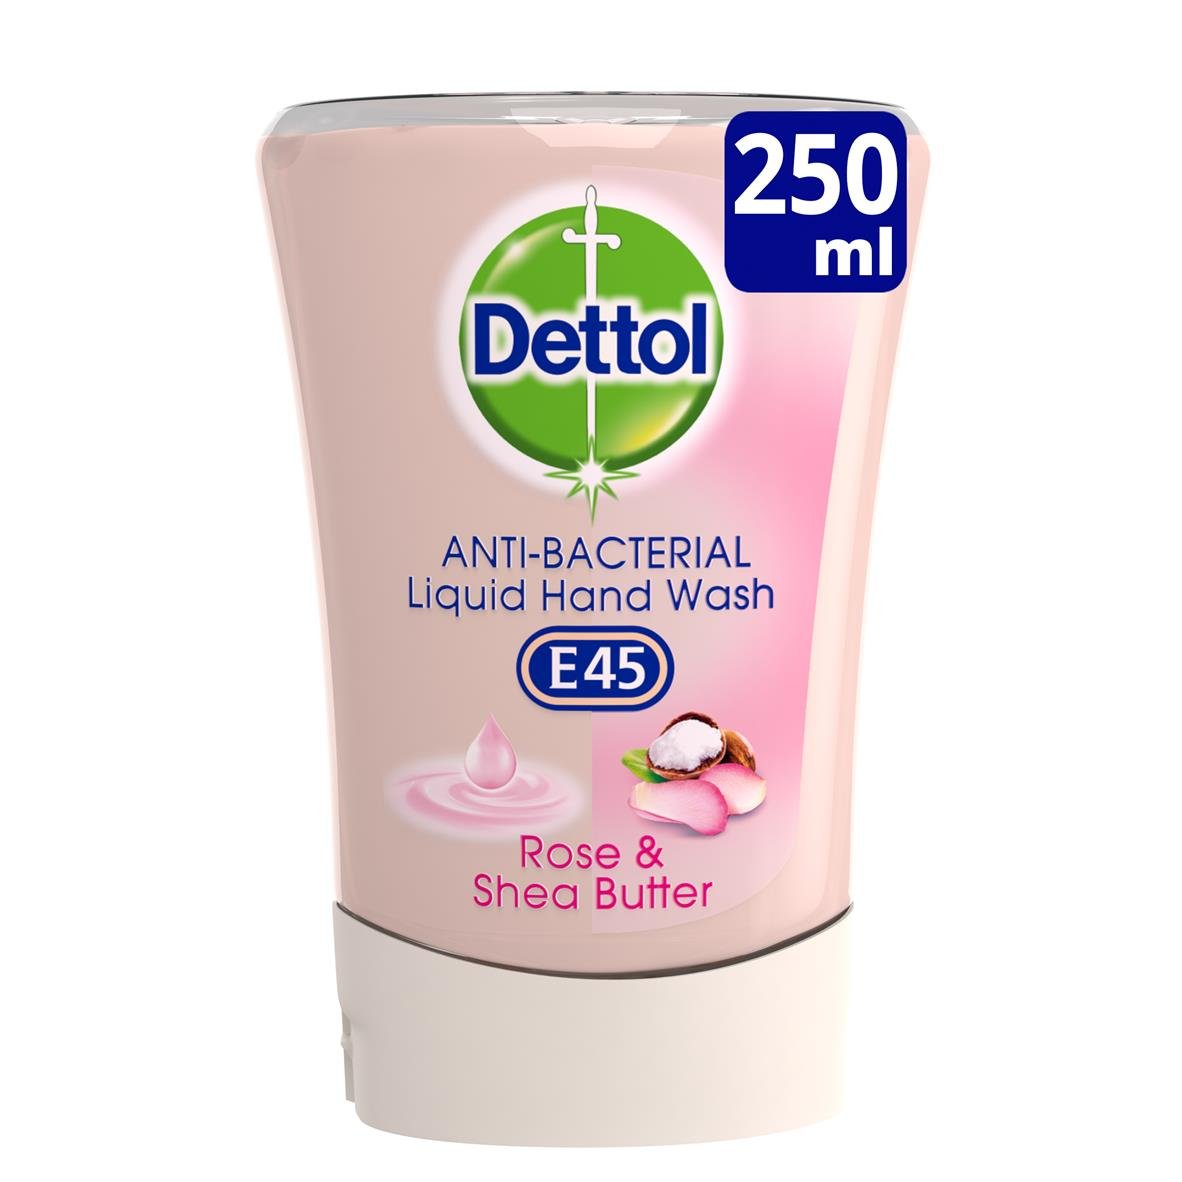 Dettol No-Touch Refill Anti-Bacterial Hand Wash, Rose and Shea Butter, 250 ml